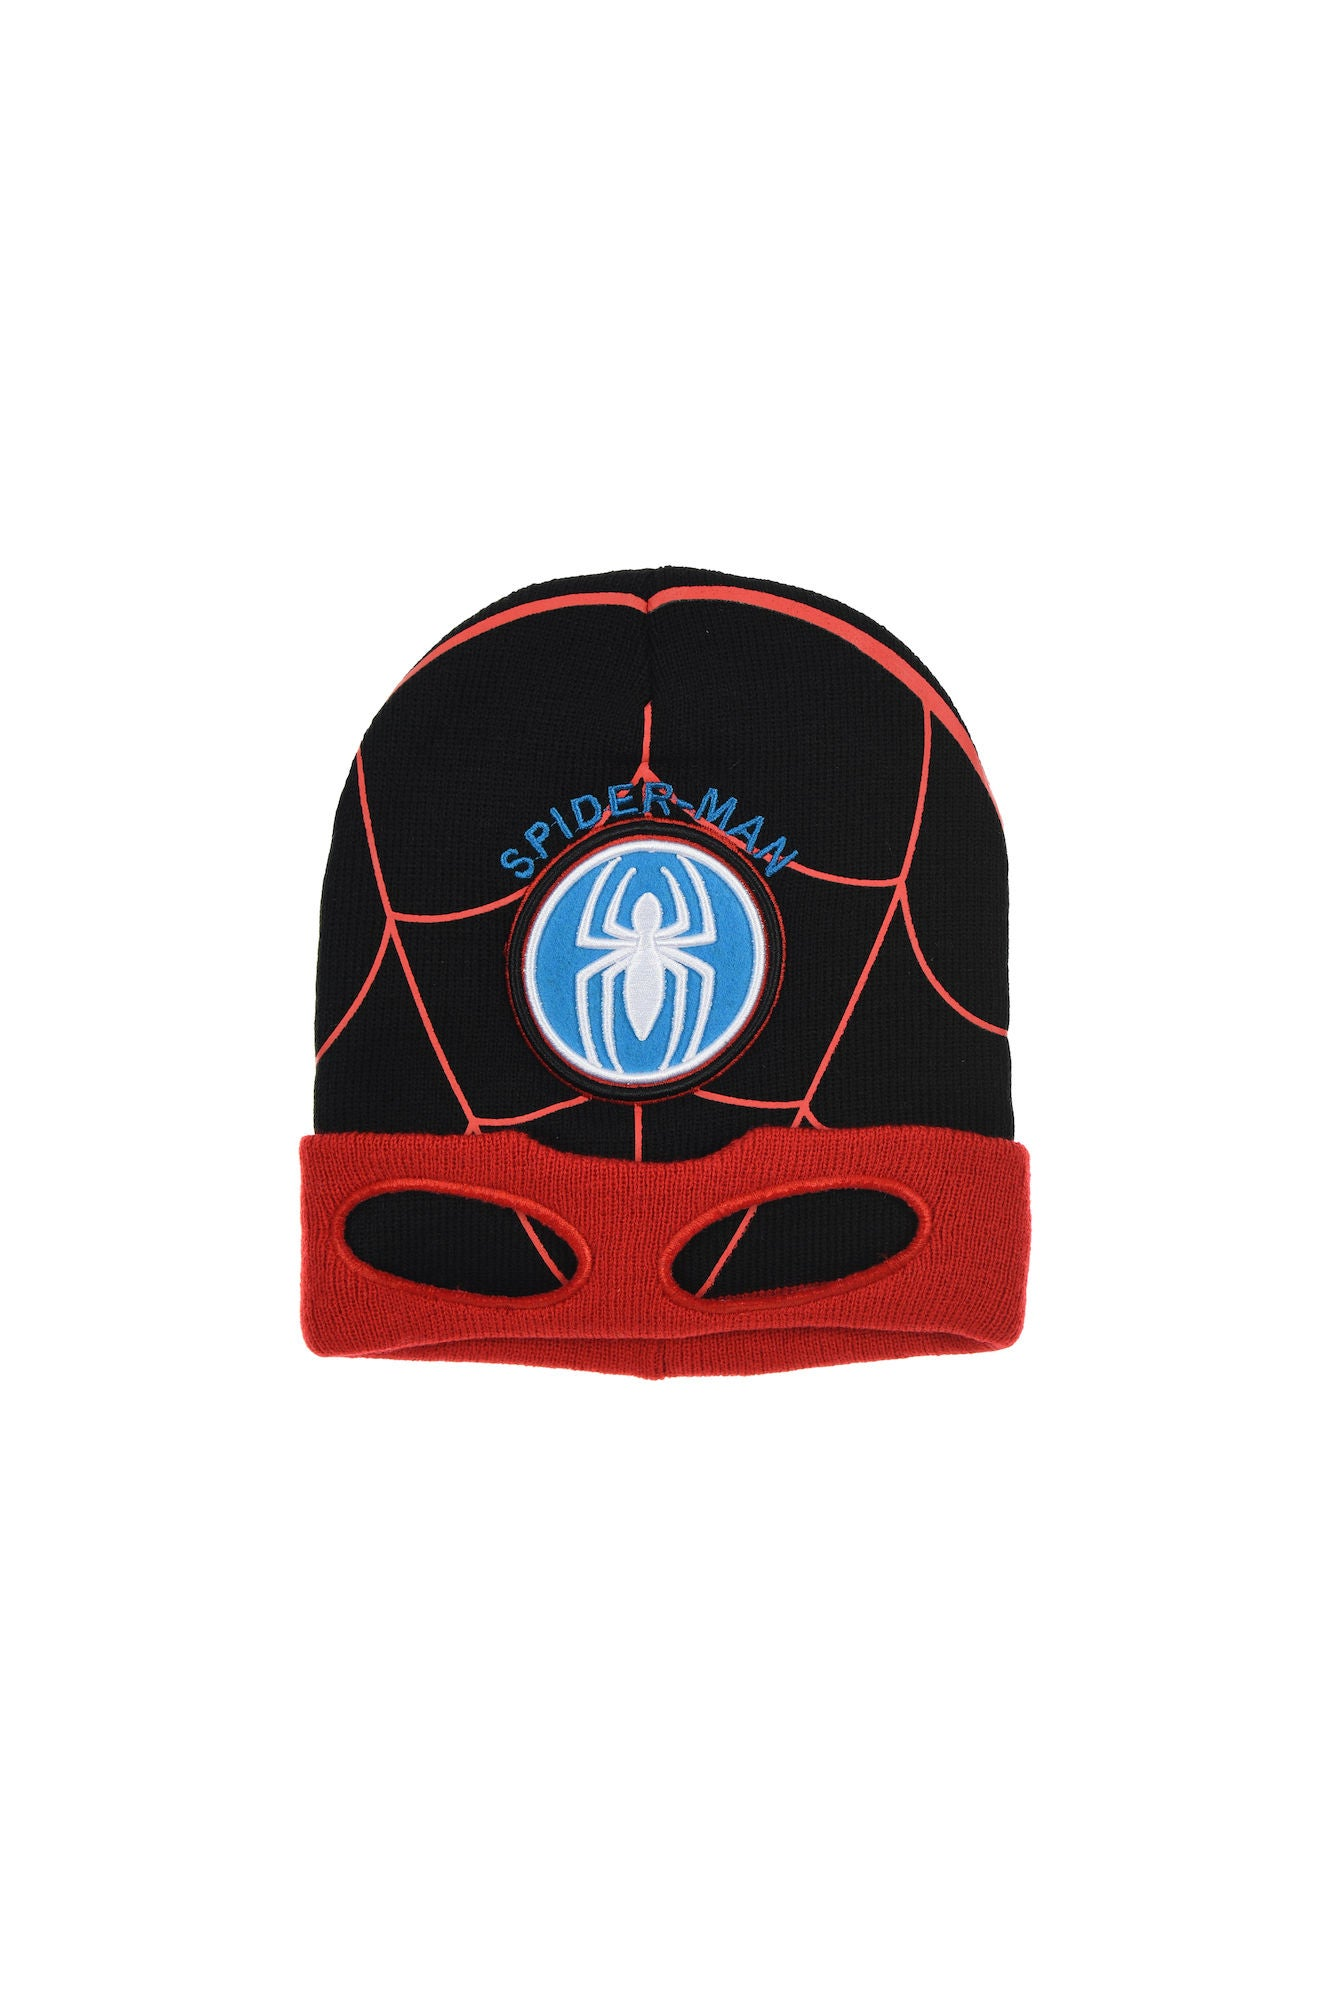 Marvel Spiderman Mössa Black 54